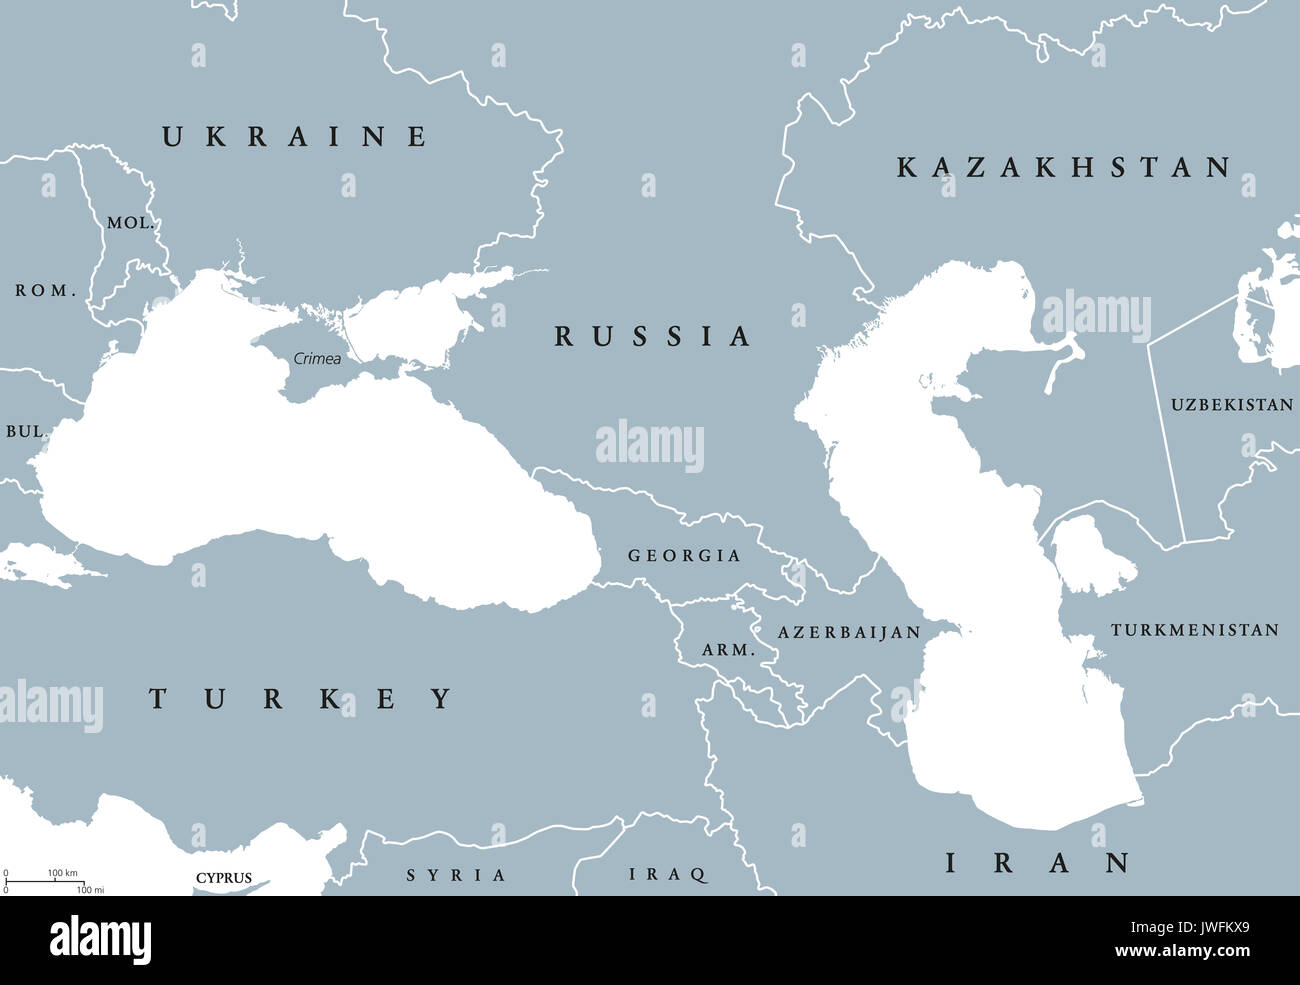 Black Sea and Caspian Sea region political map with ...